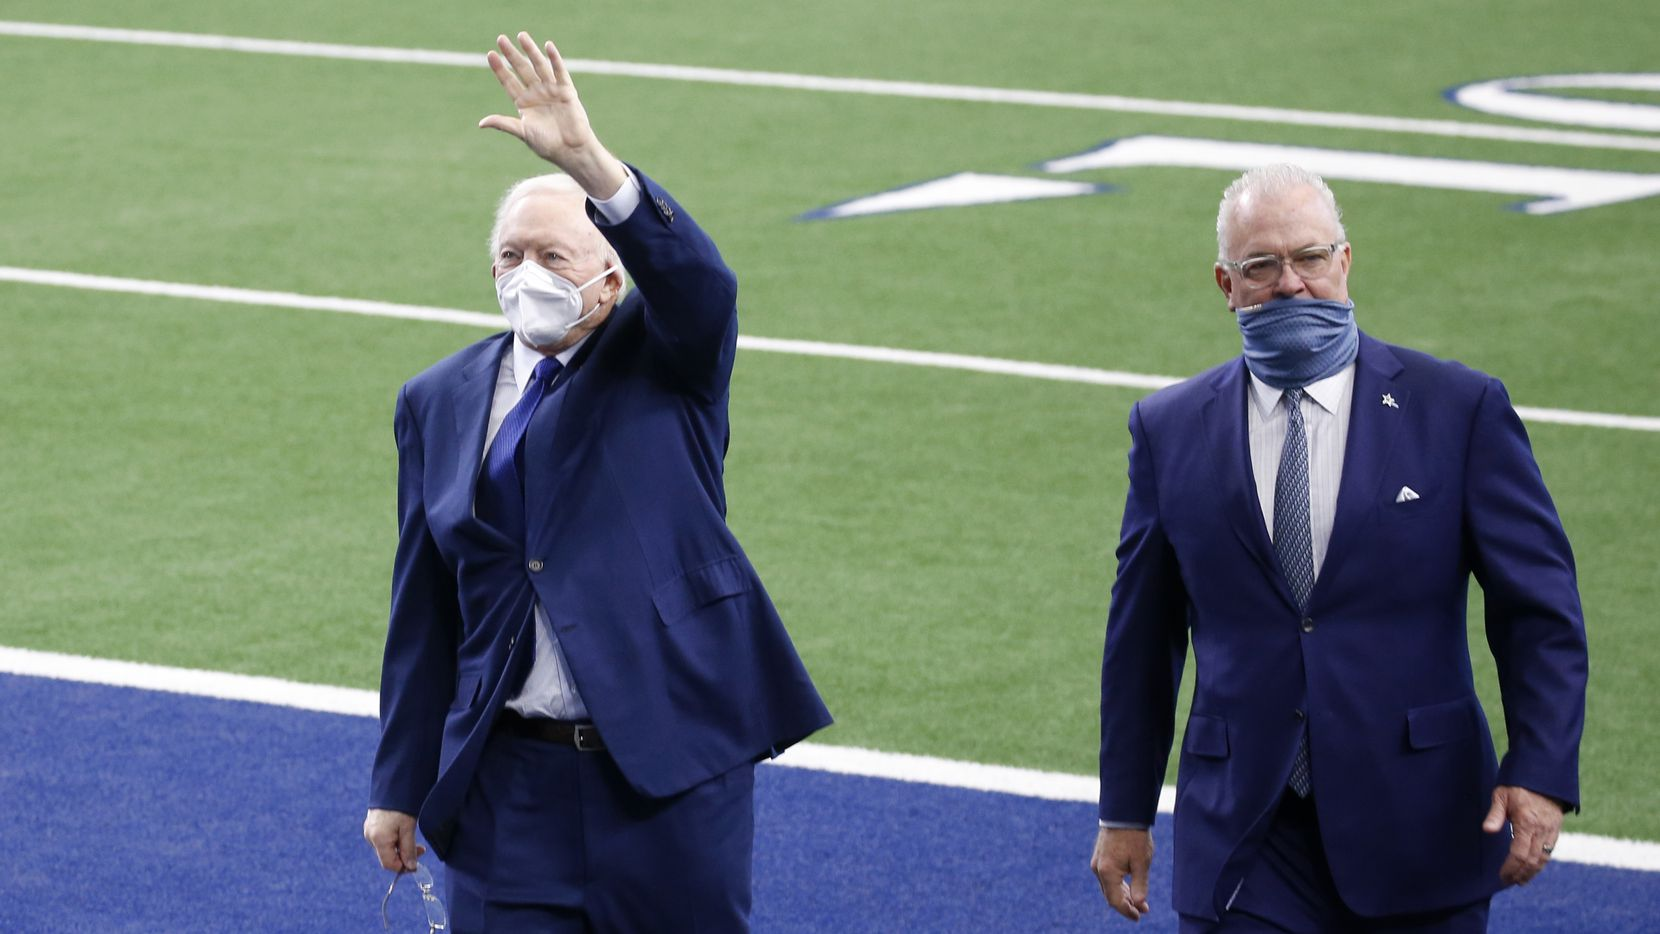 Dallas Cowboys owner and general manager Jerry Jones waves to fans as he walks off the field with Dallas Cowboys executive vice president Stephen Jones during pregame activities for the home opener between the Dallas Cowboys and Atlanta Falcons at AT&T Stadium in Arlington, Texas on Sunday, September 20, 2020.